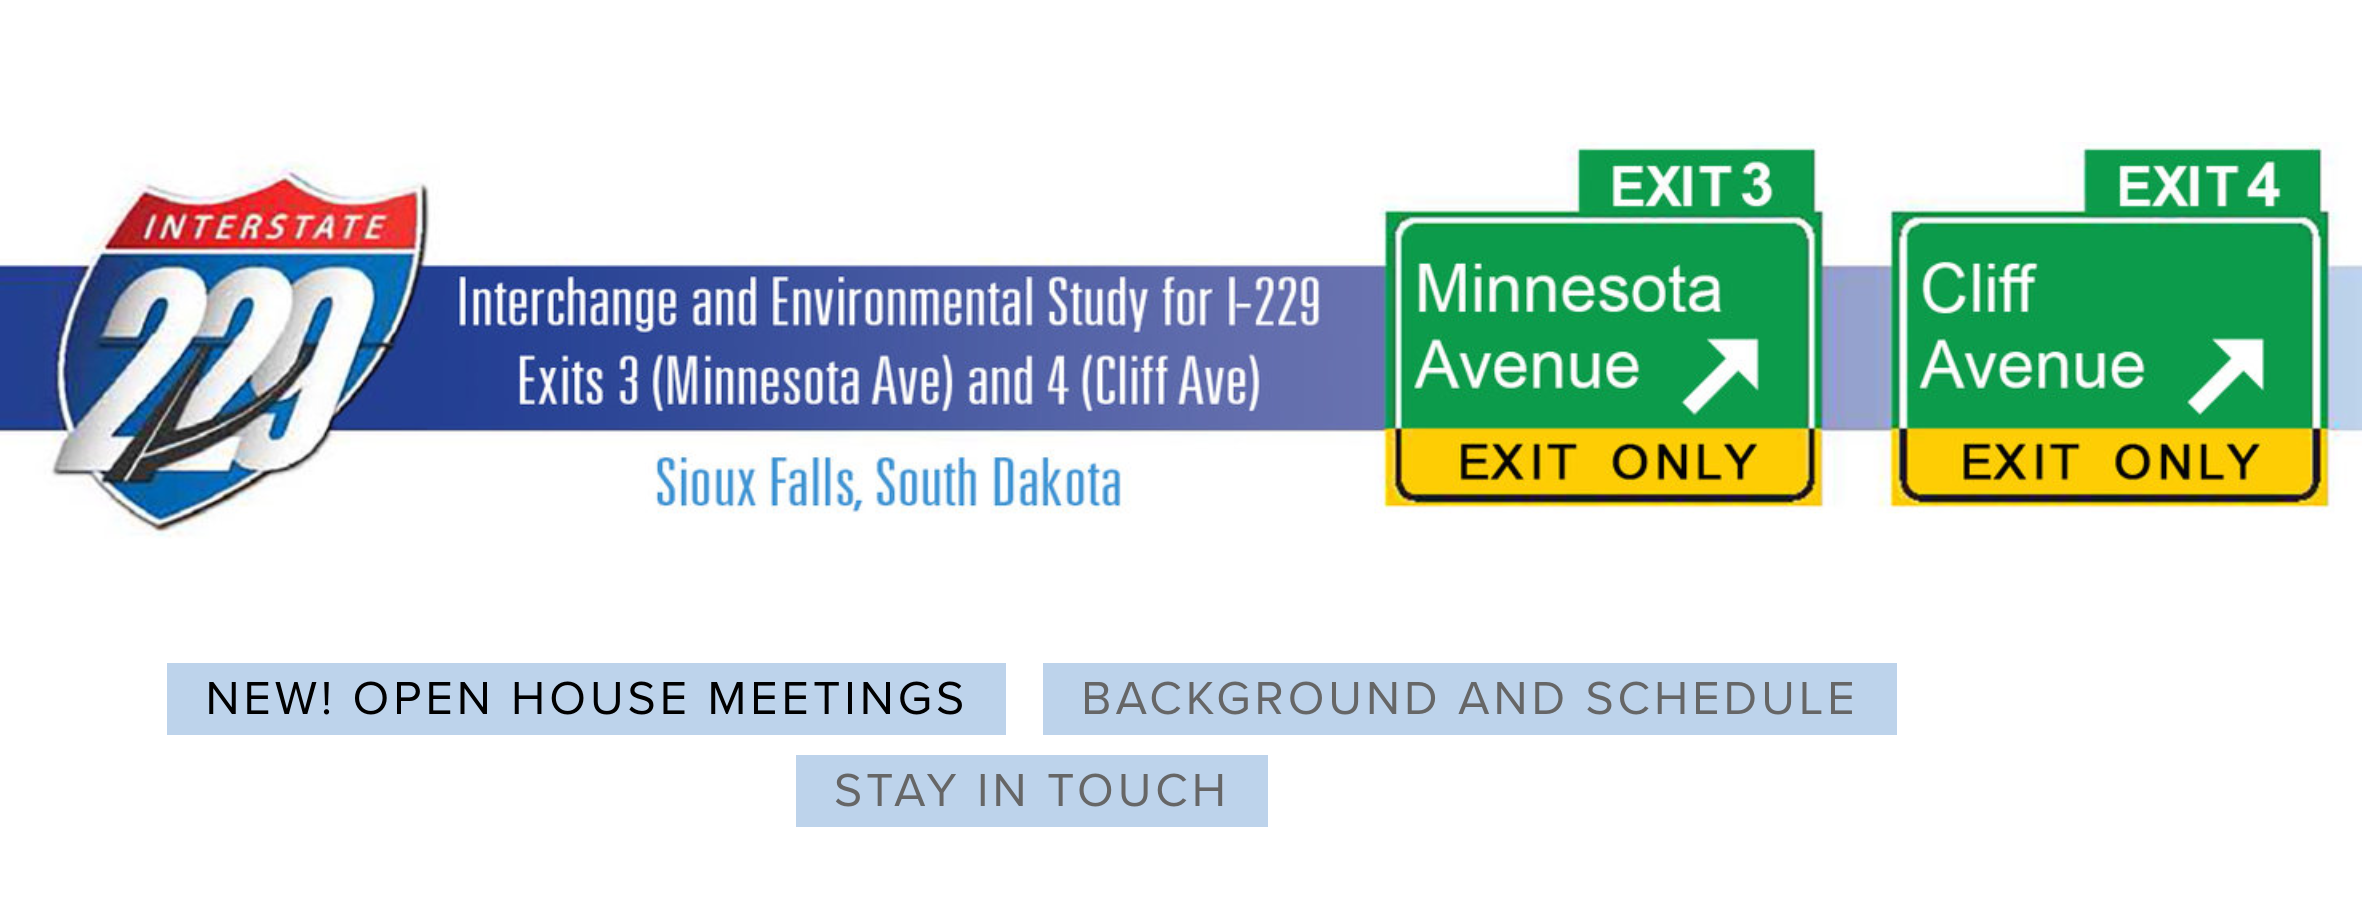 Take Action: I-229 Exits on Cliff and Minnesota Ave